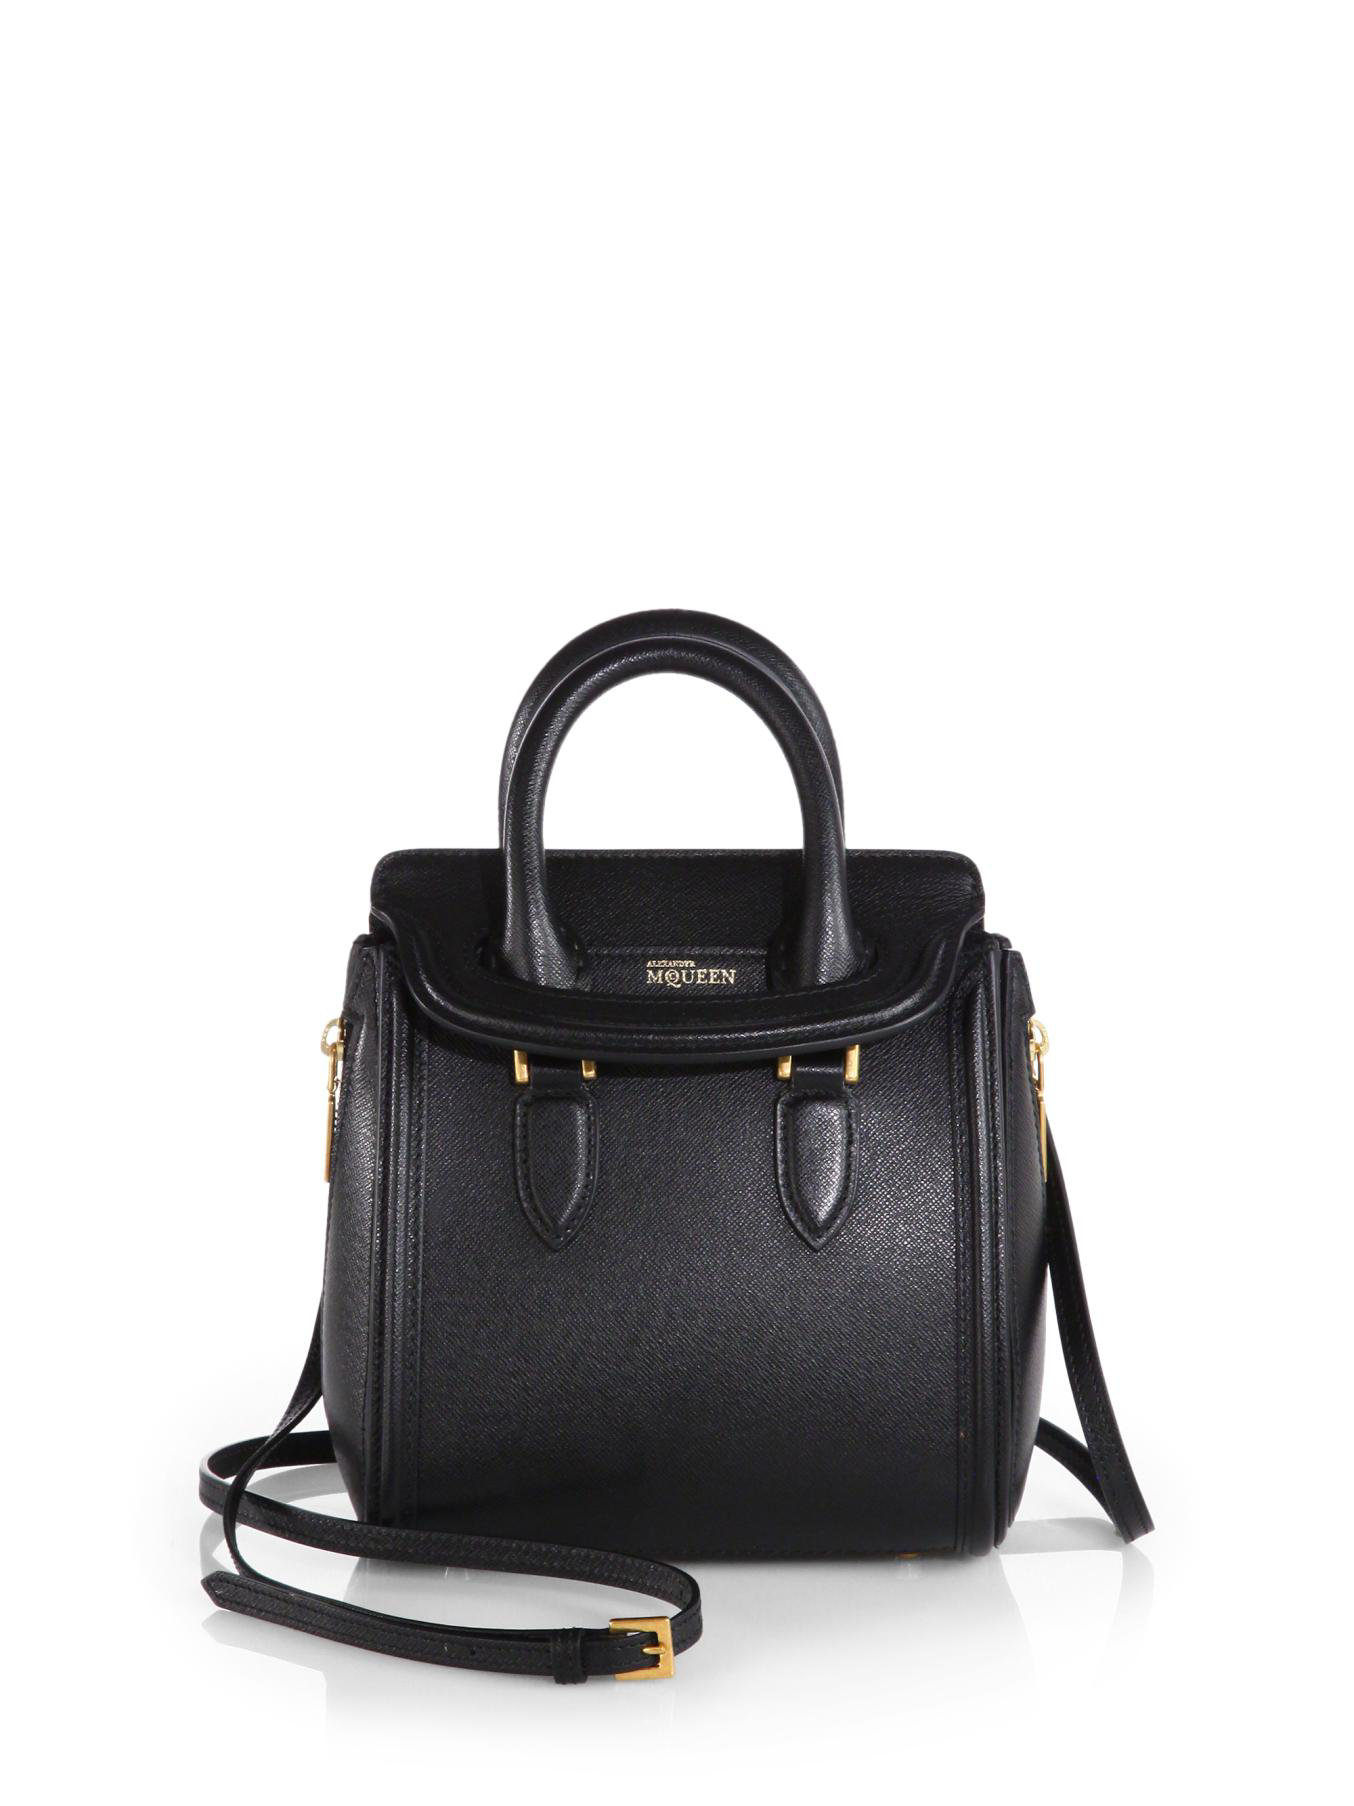 42a190e3dc0d3 Lyst - Alexander McQueen Heroine Mini Crossbody Bag in Black